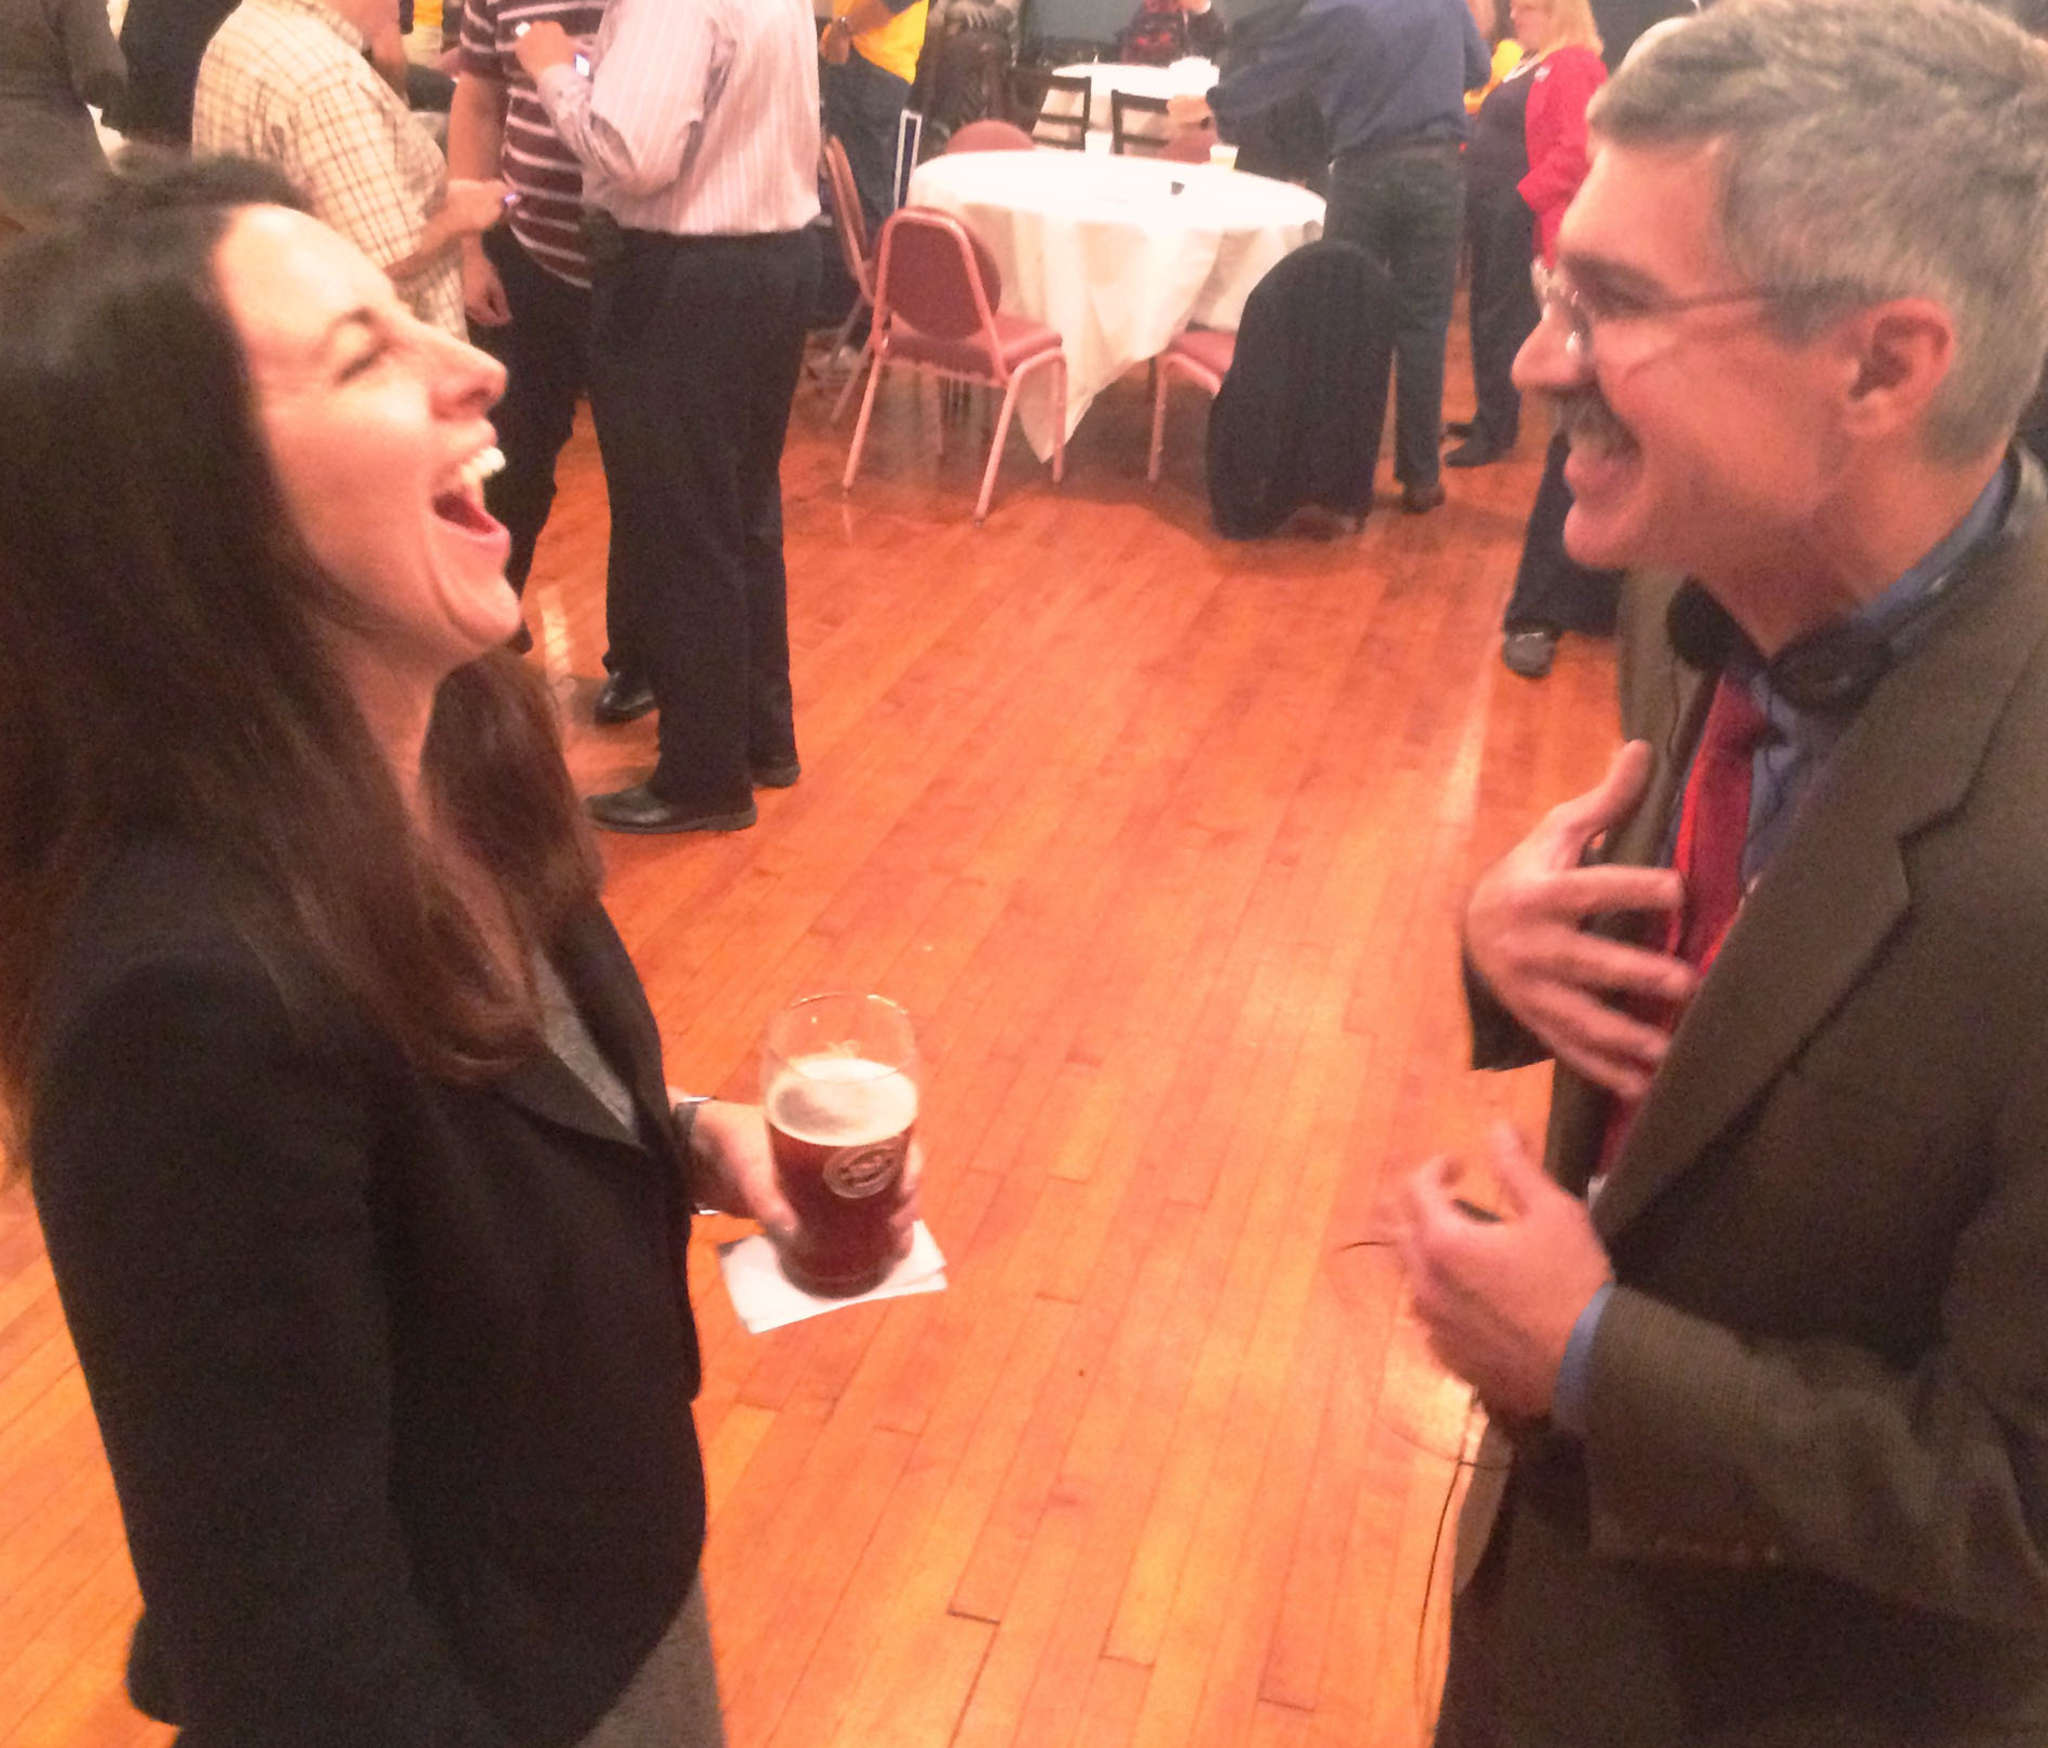 STU BYOFSKY / DAILY NEWS STAFF Republican mayoral candidate Melissa Murray Bailey enjoys a beer and laugh with KYW NewsRadio reporter Mike DeNardo after the polls closed Tuesday night.